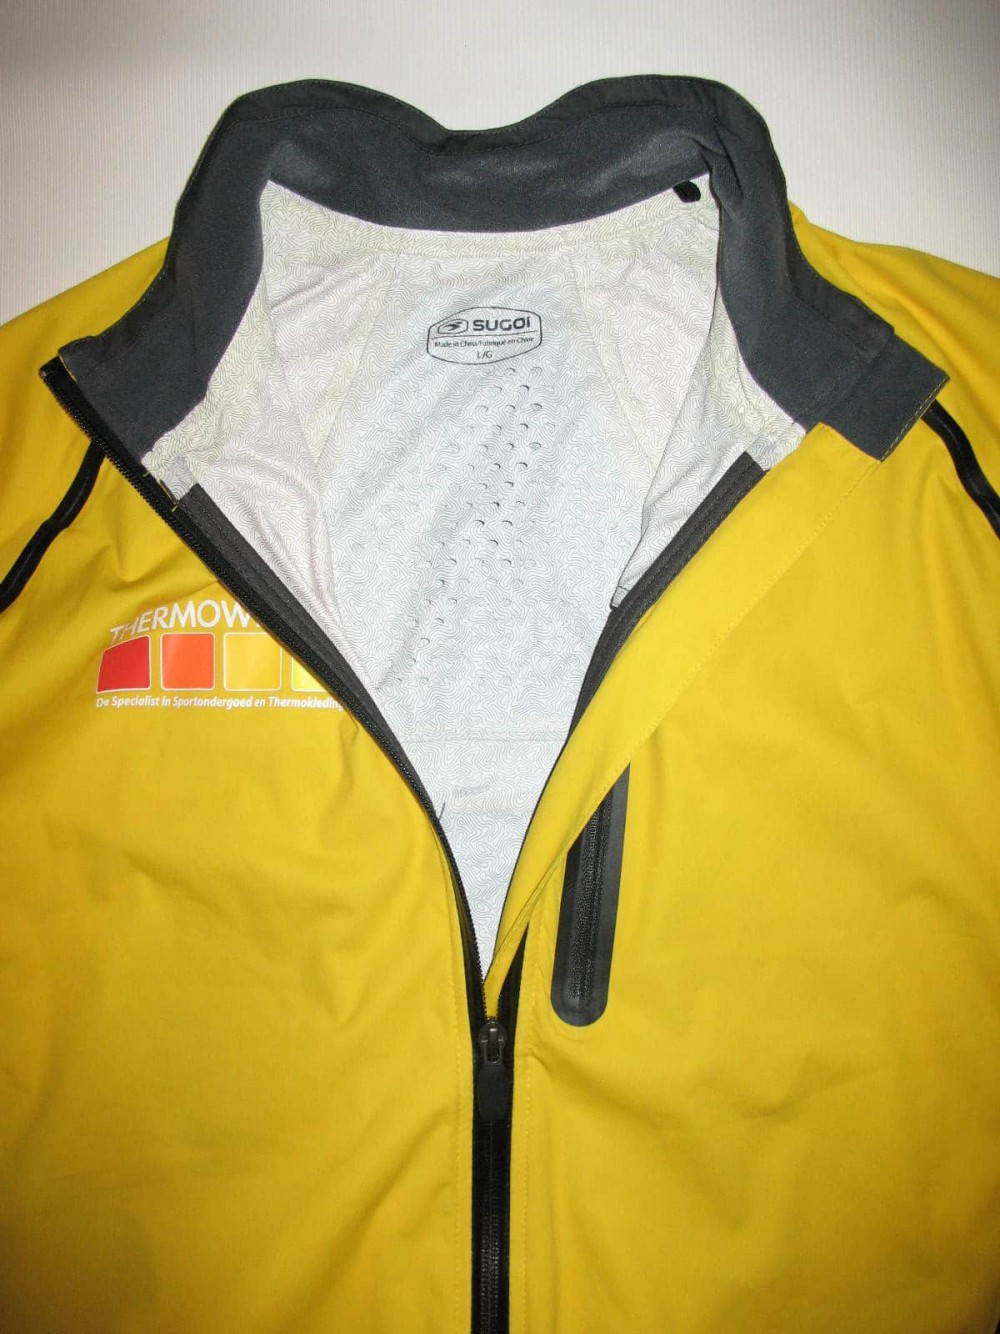 Куртка SUGOI thermowear rain light bike/run jacket (размер L) - 3